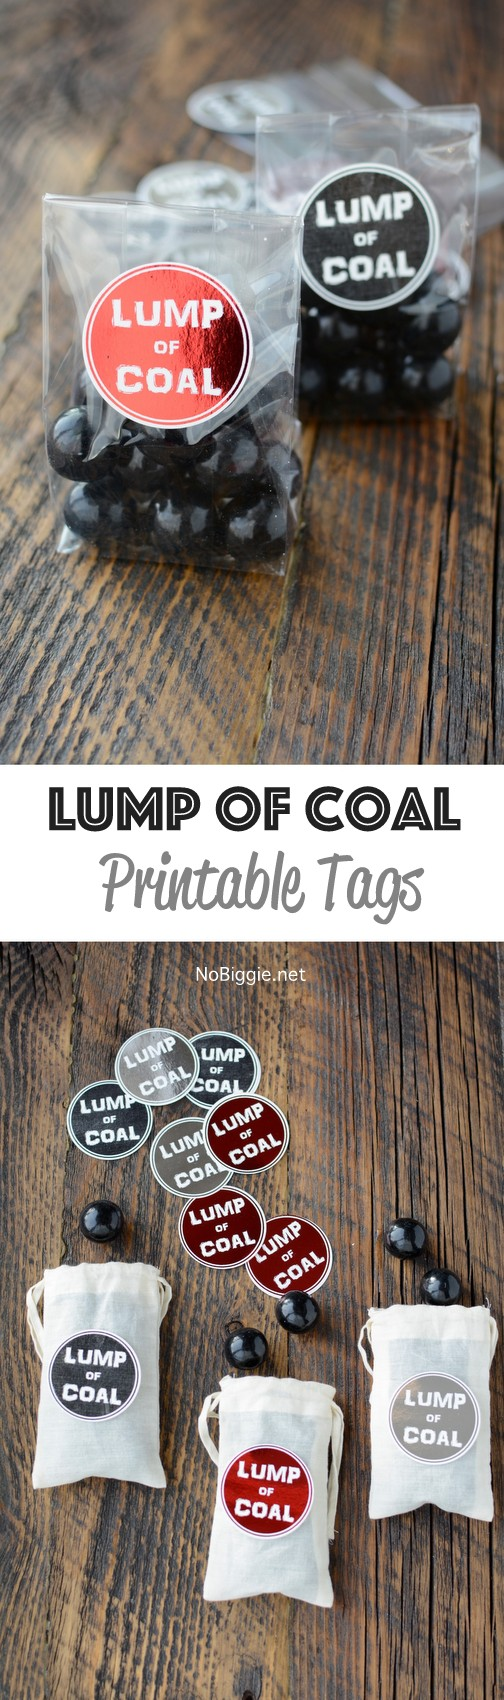 Lump of Coal Printable - a cute little gift to place in your kiddos stockings. #lumpofcoal #printables #christmasgifts #gaggifts #stockingstuffers